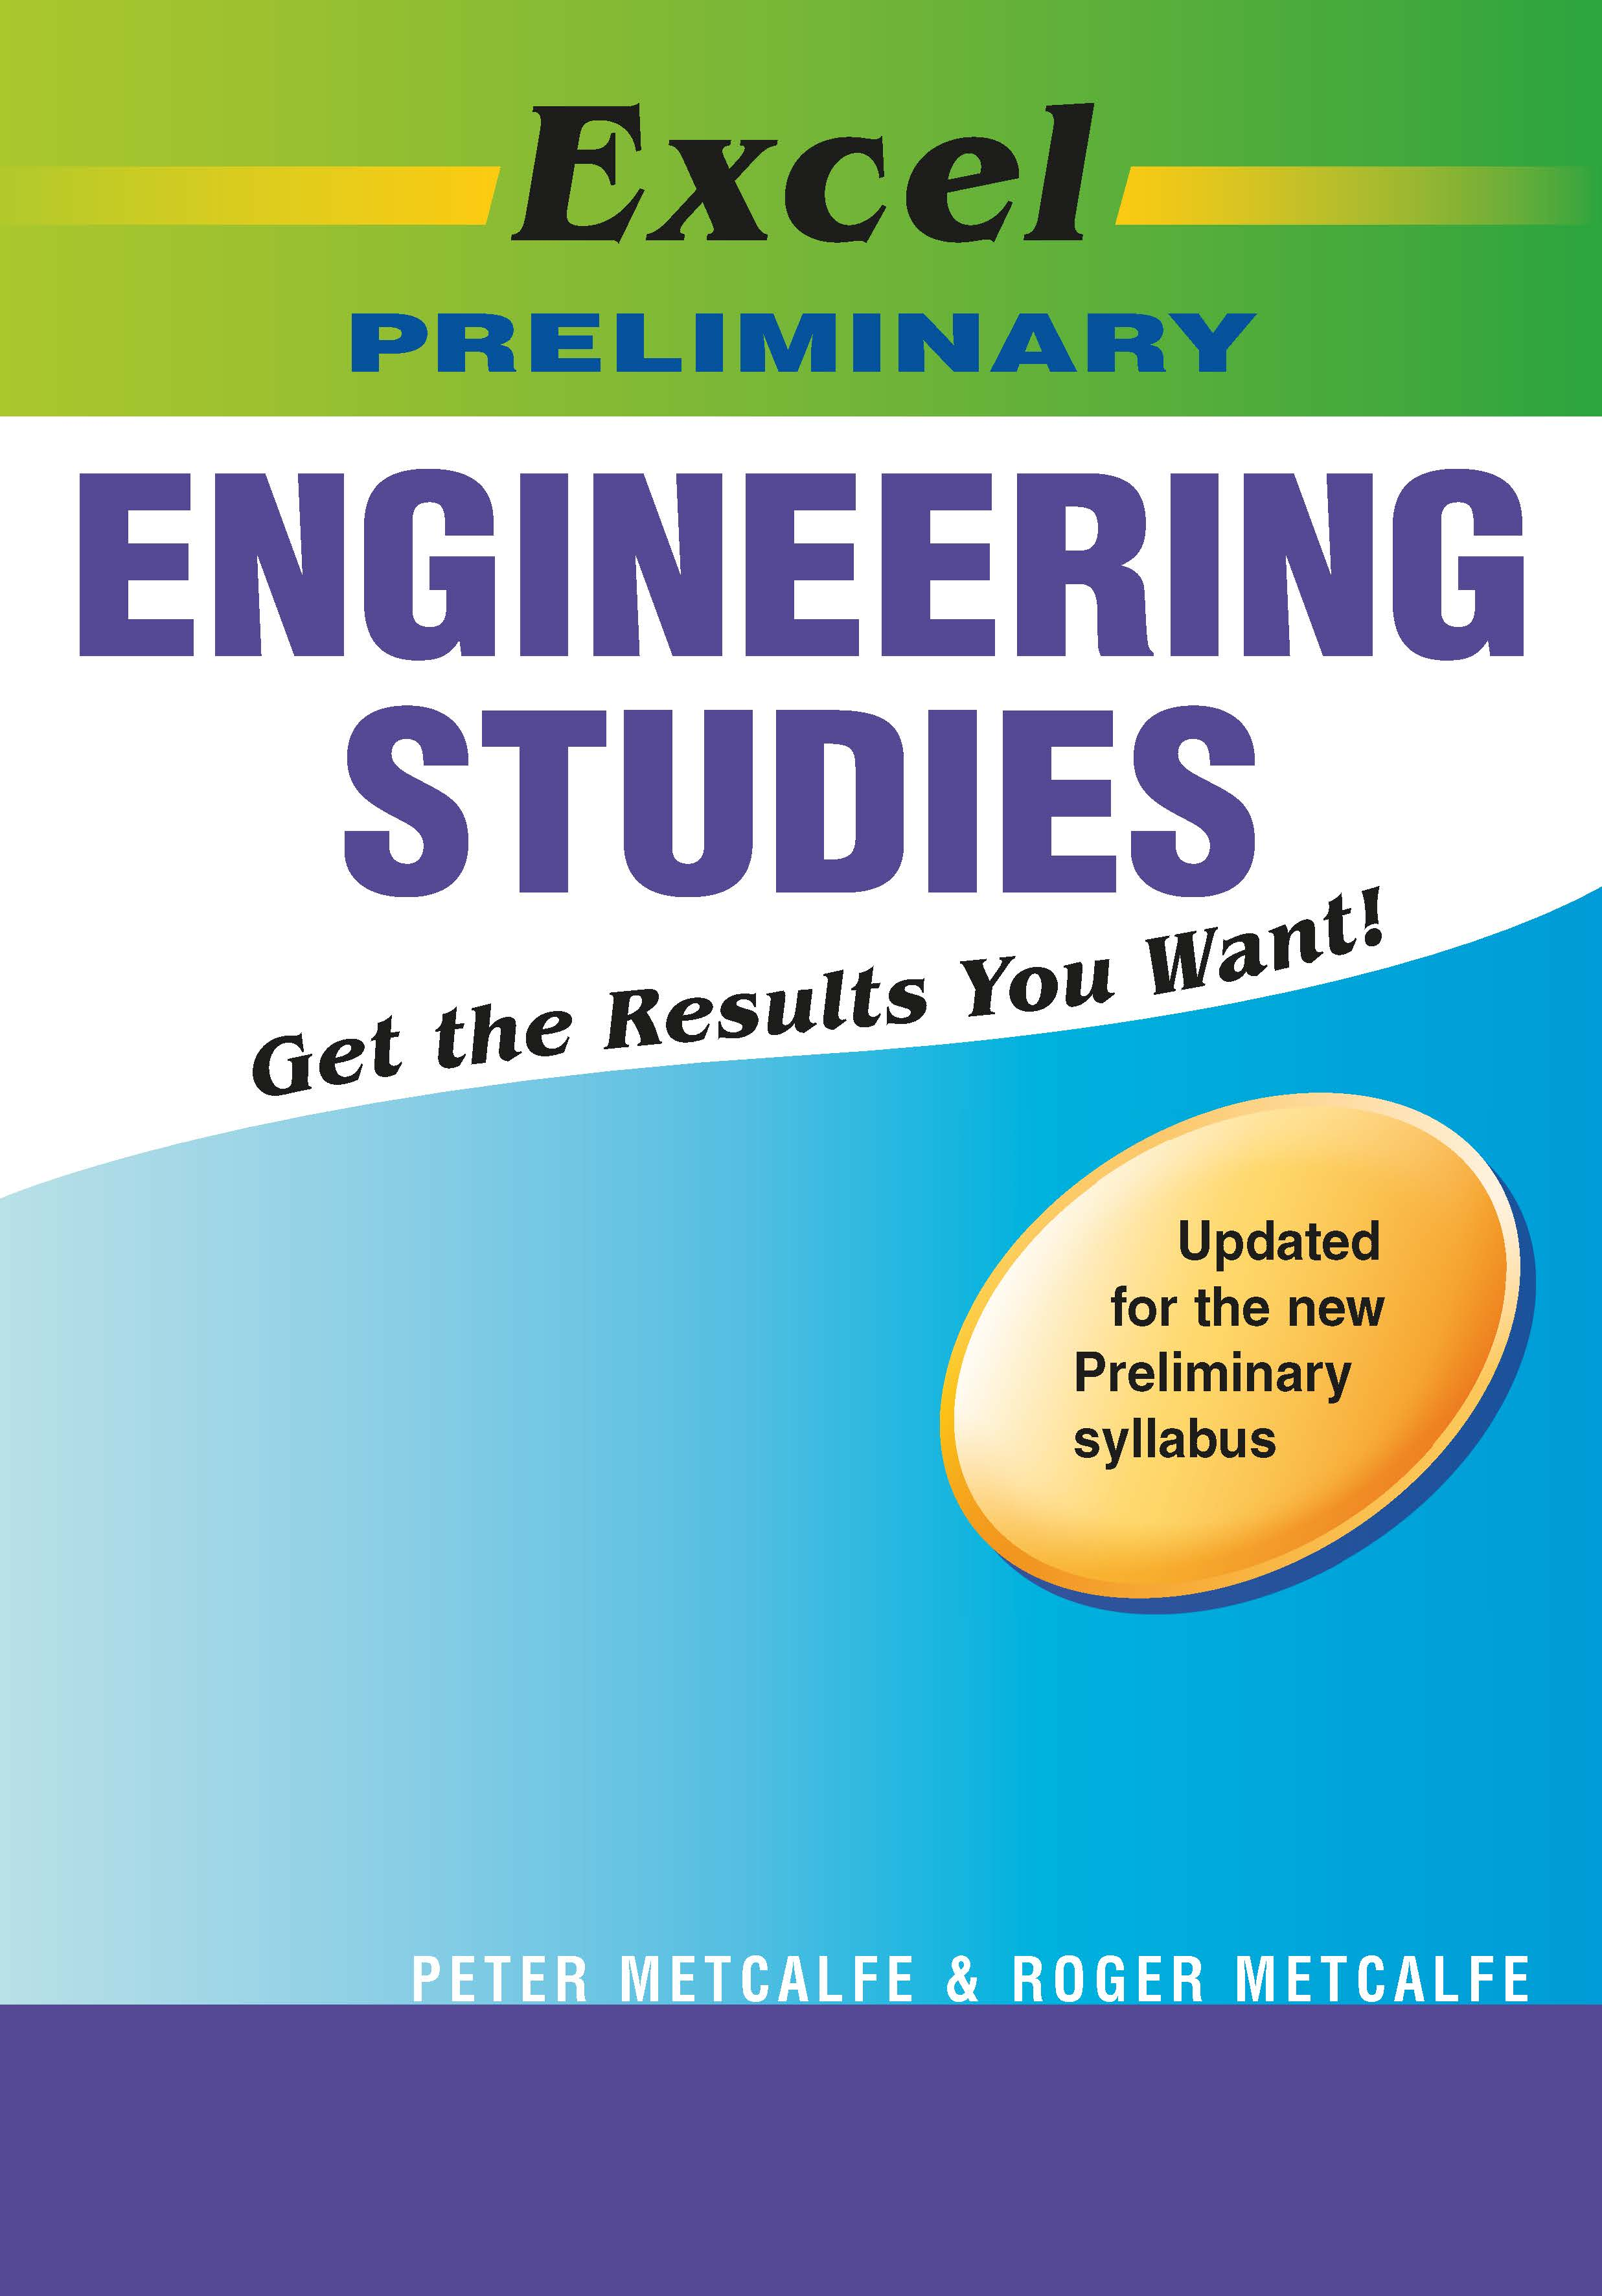 Excel Study Guide: Preliminary Engineering Studies Year 11